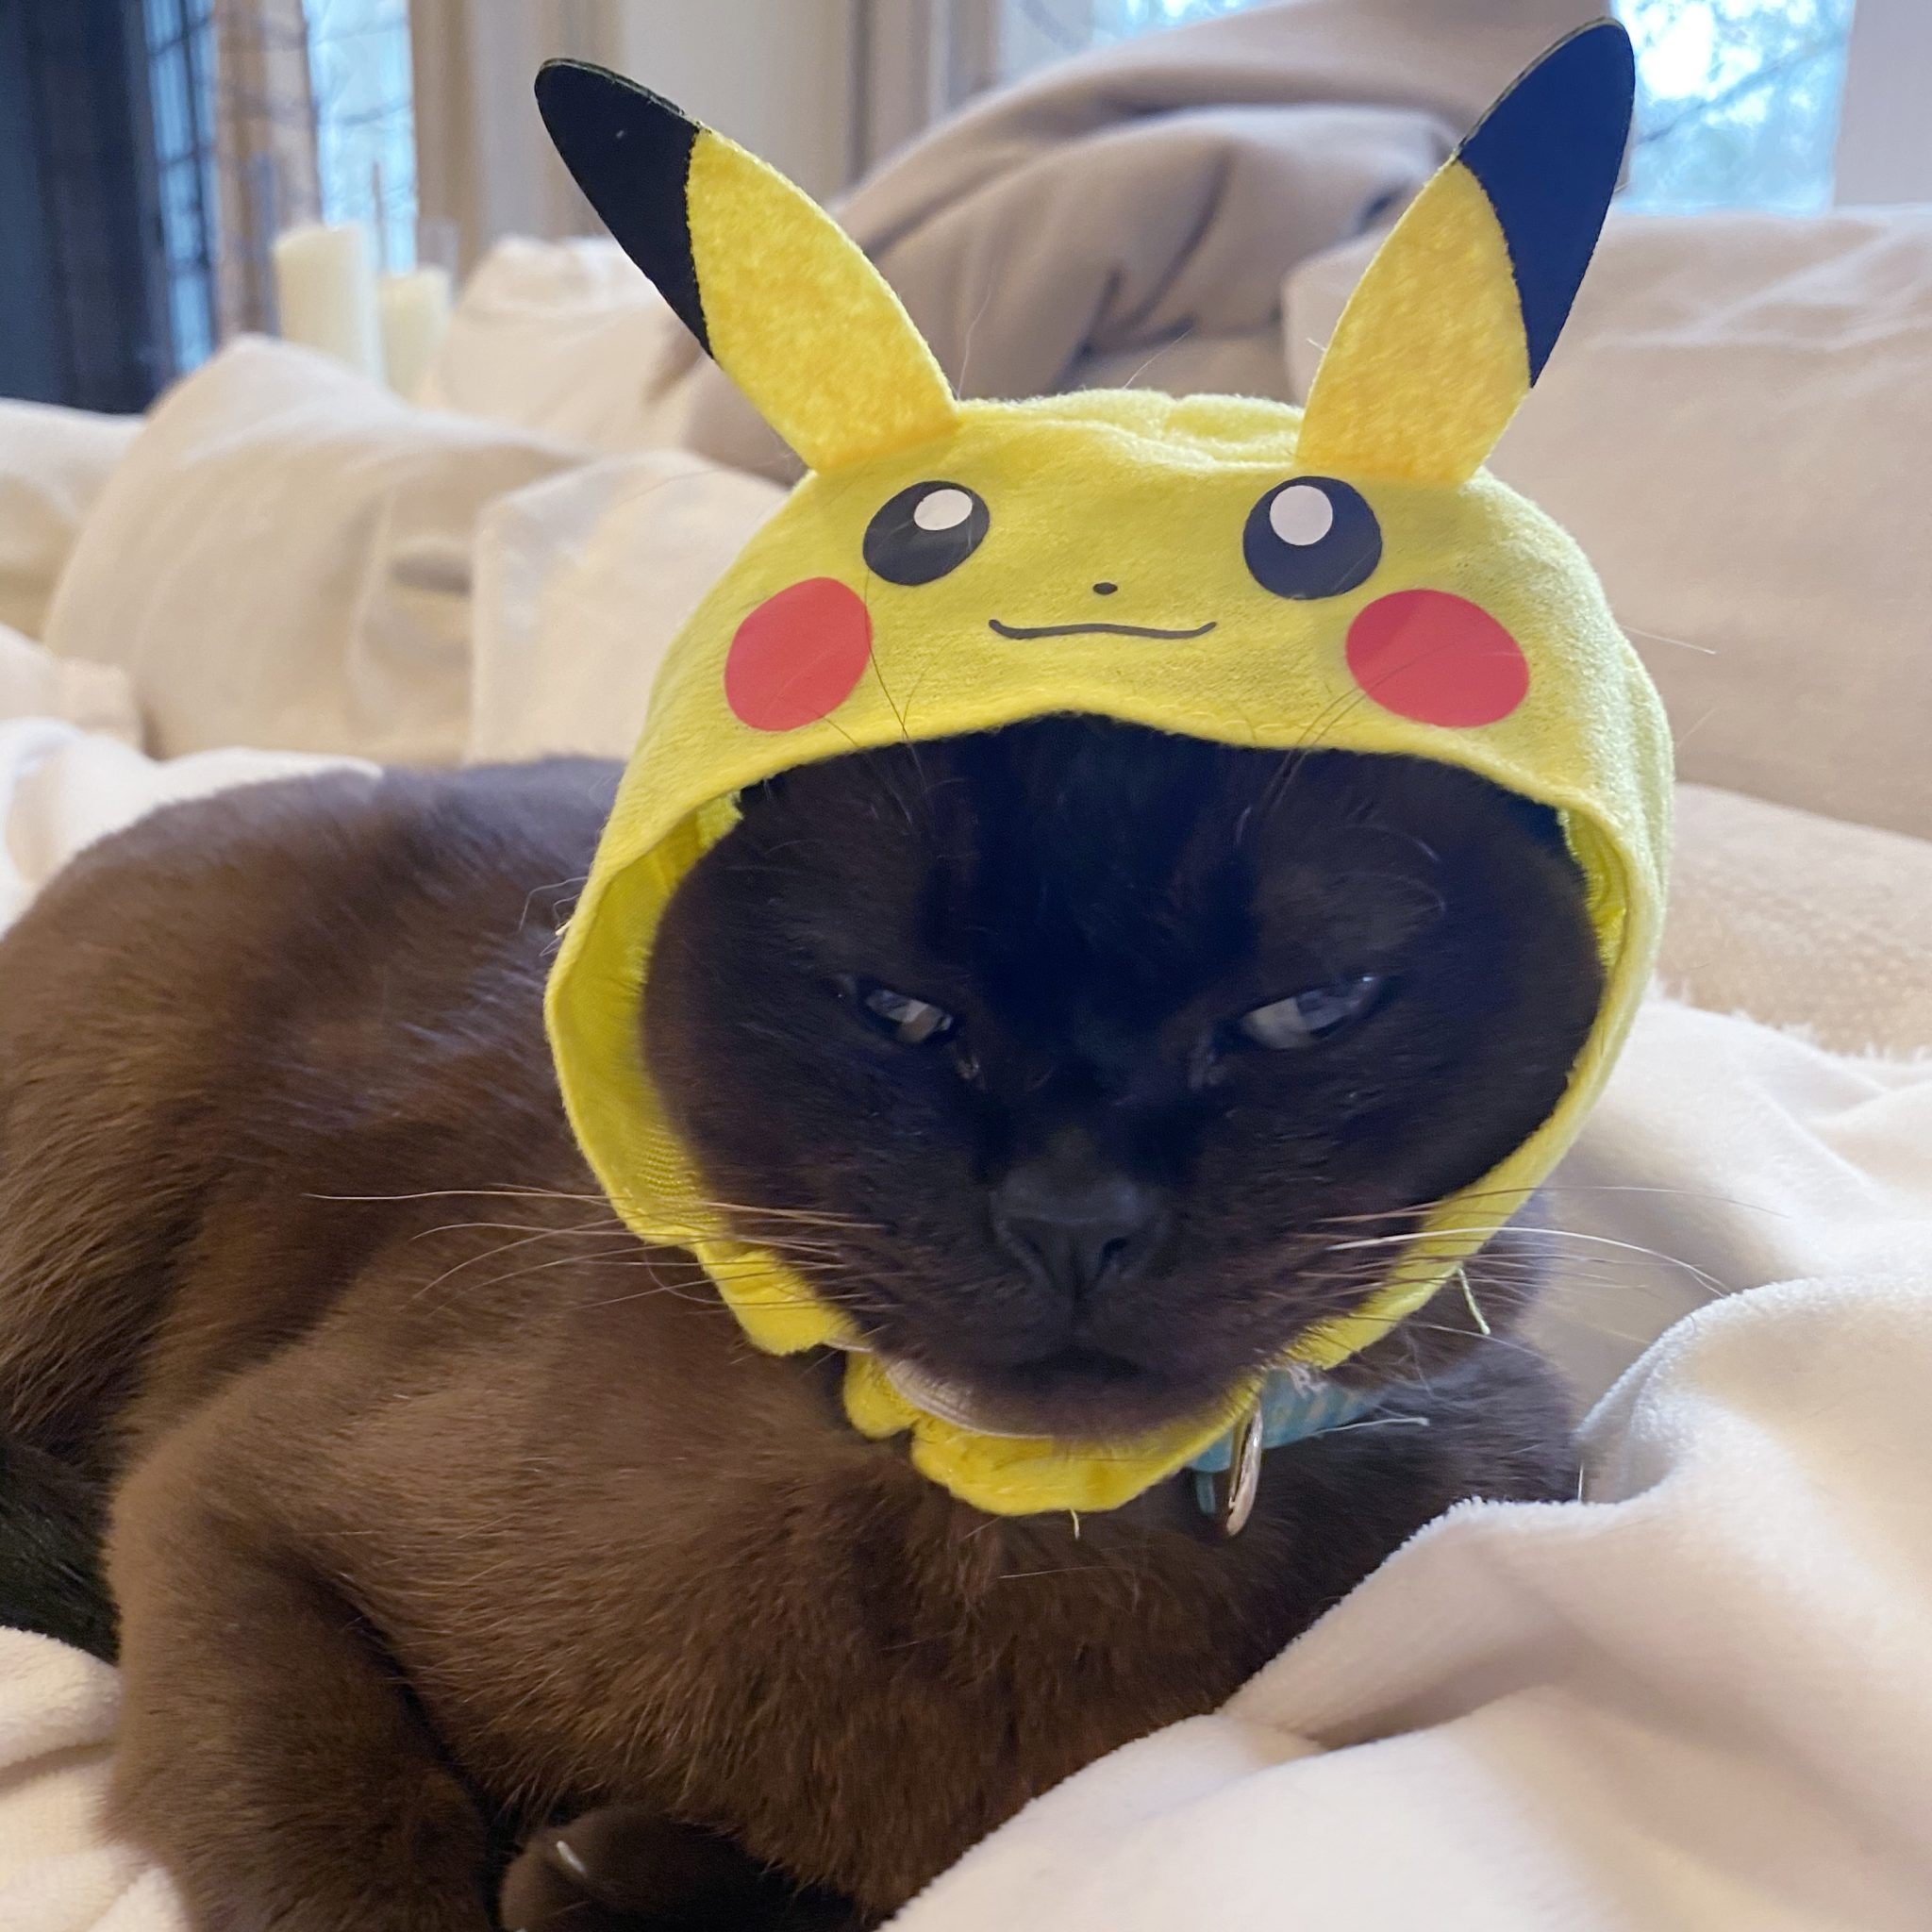 Ella wearing a Pokemon Pikachu Cat Hat purchased on a Maction Planet Tokyo Tour